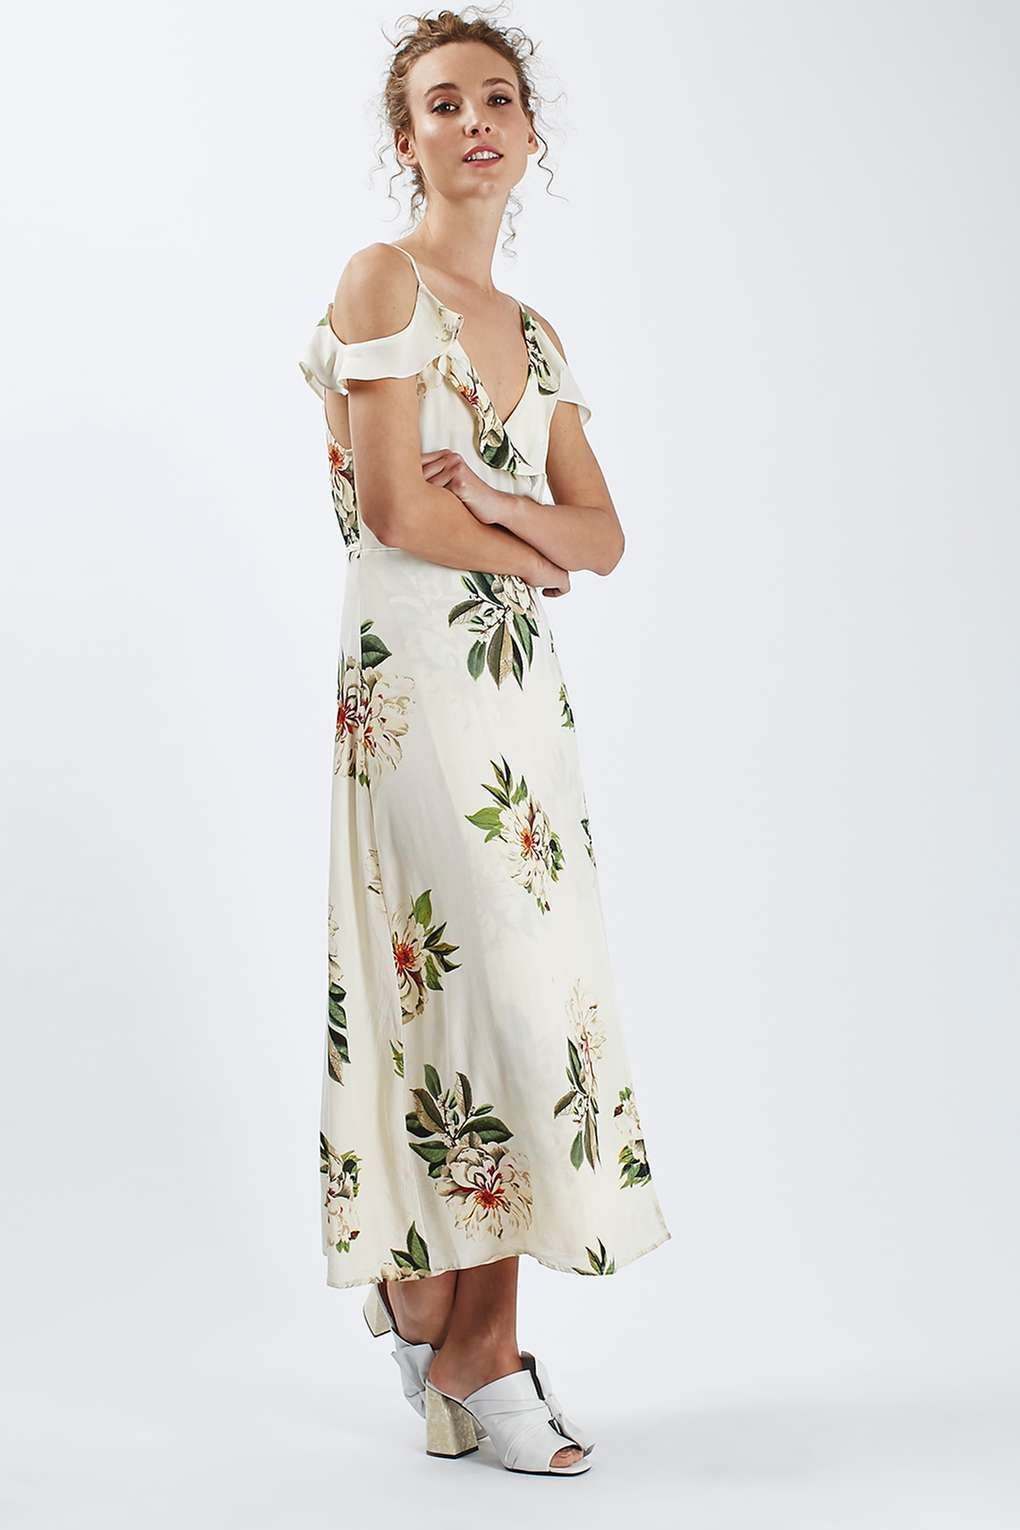 Outdoor summer wedding dresses  How perfect is this Topshop dress for an outdoor summer wedding